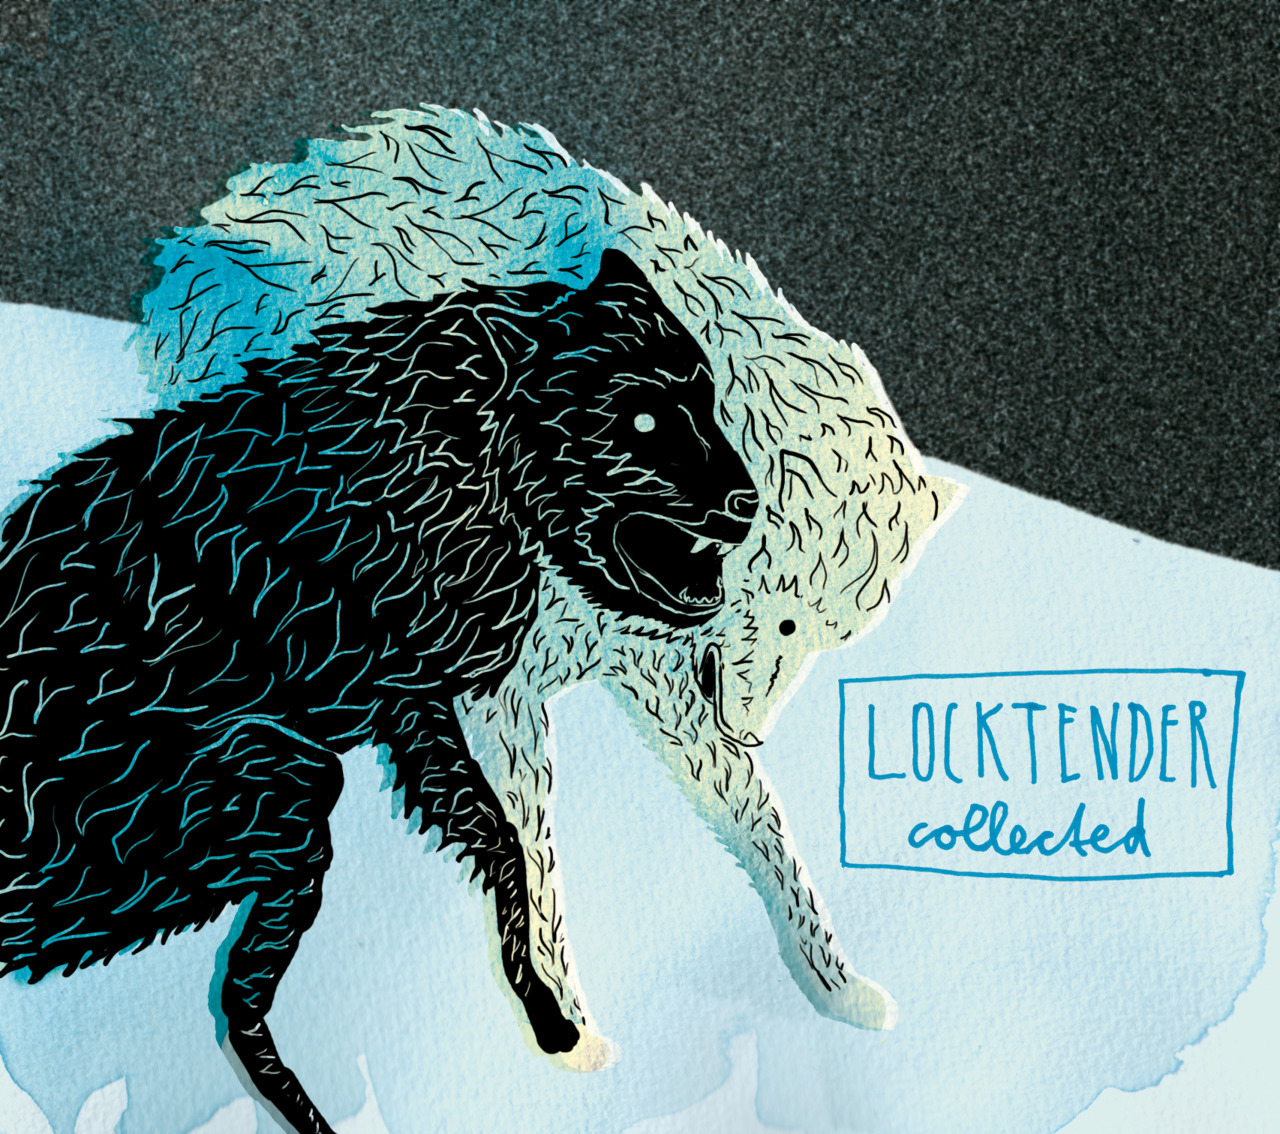 Cover for the forthcoming CD of the band Locktender from Cleveland, OH. locktender.bandcamp.com